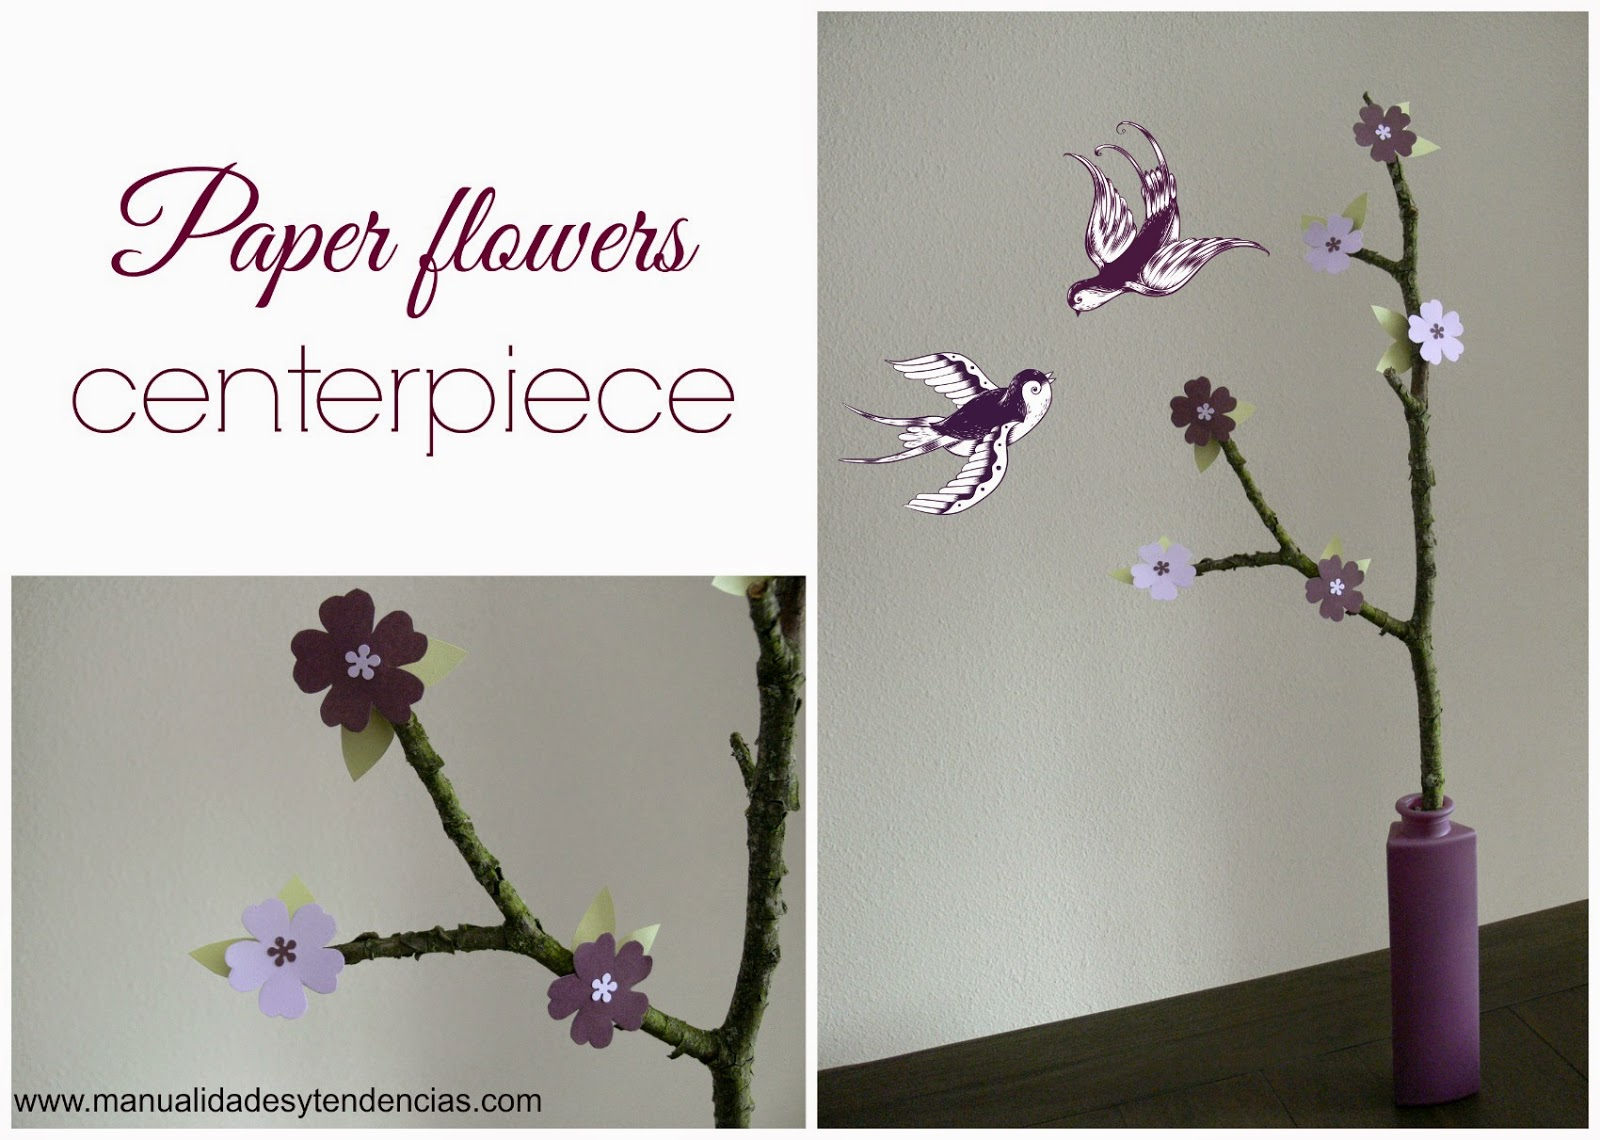 Paper flowers centerpiece